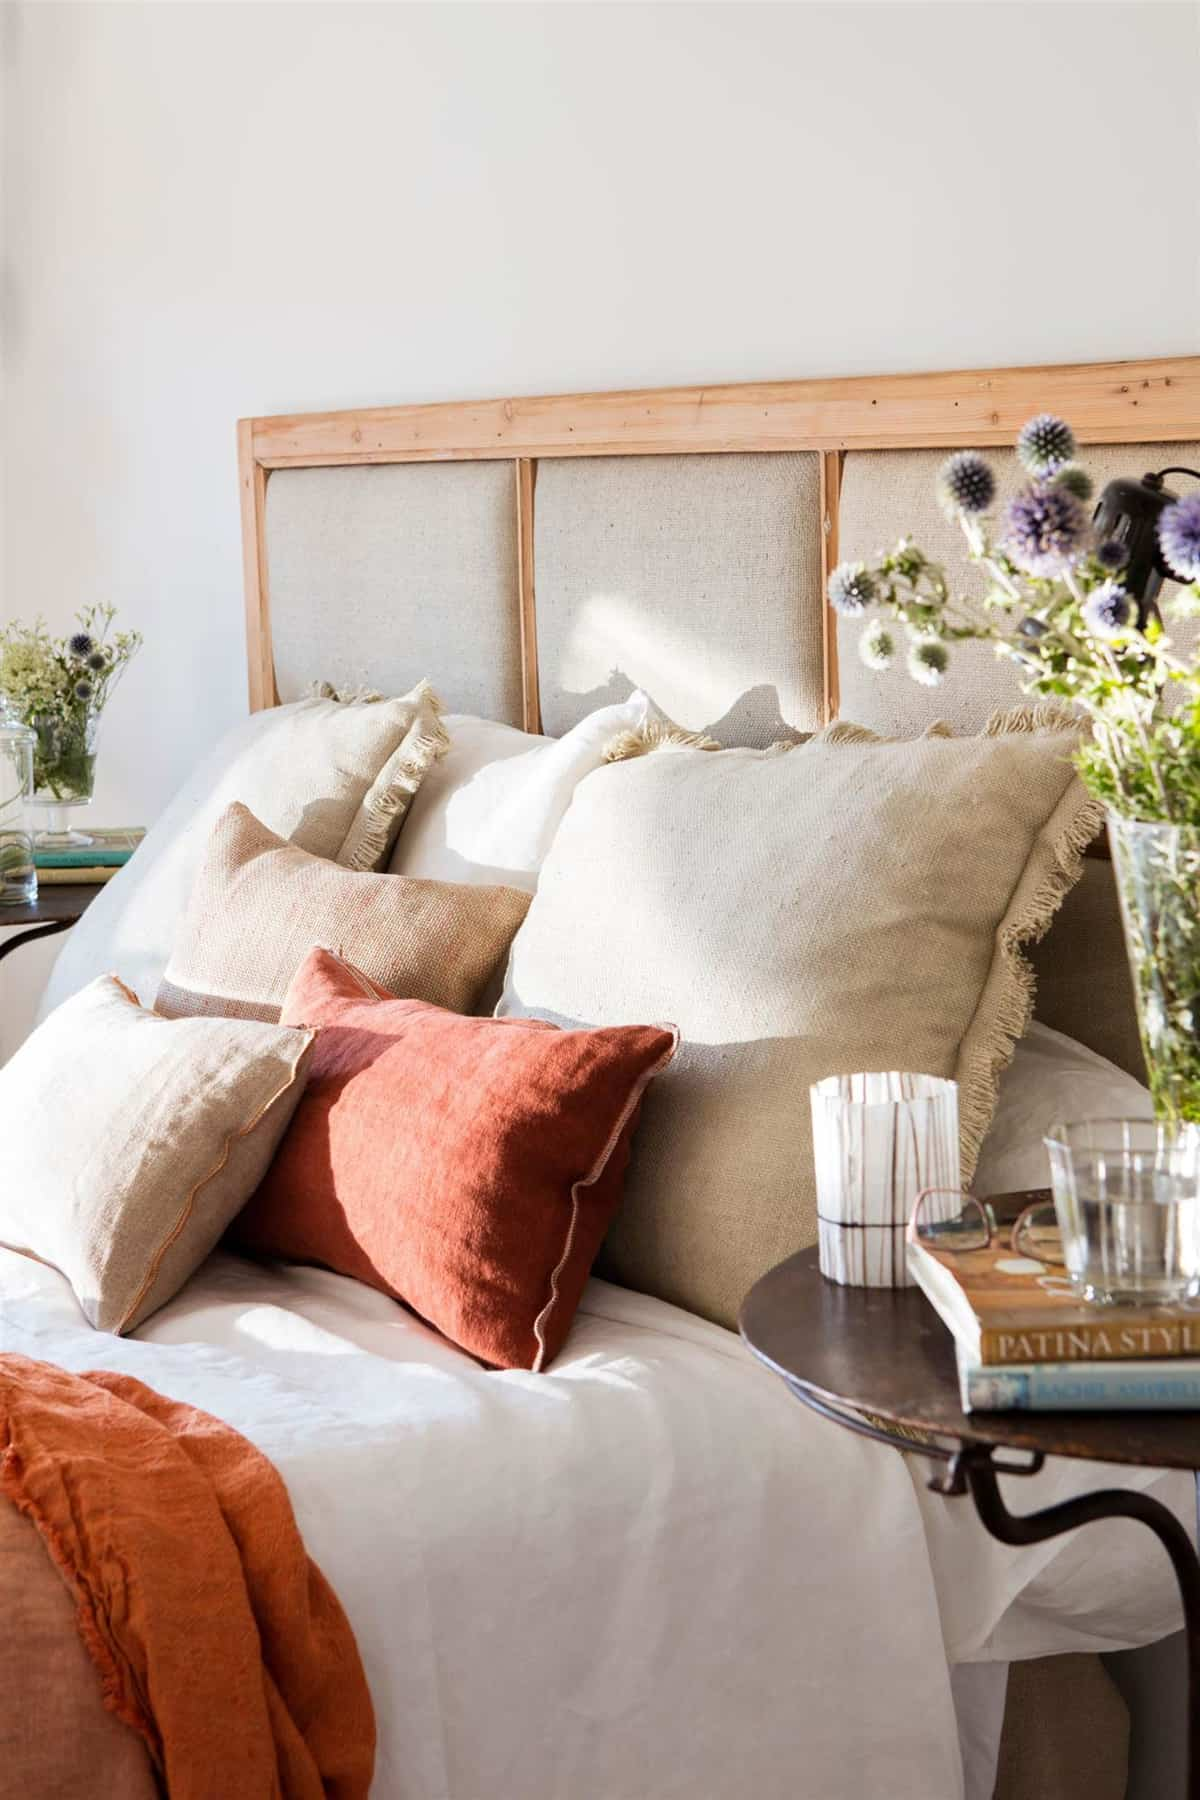 Fluffy upholstered headboards